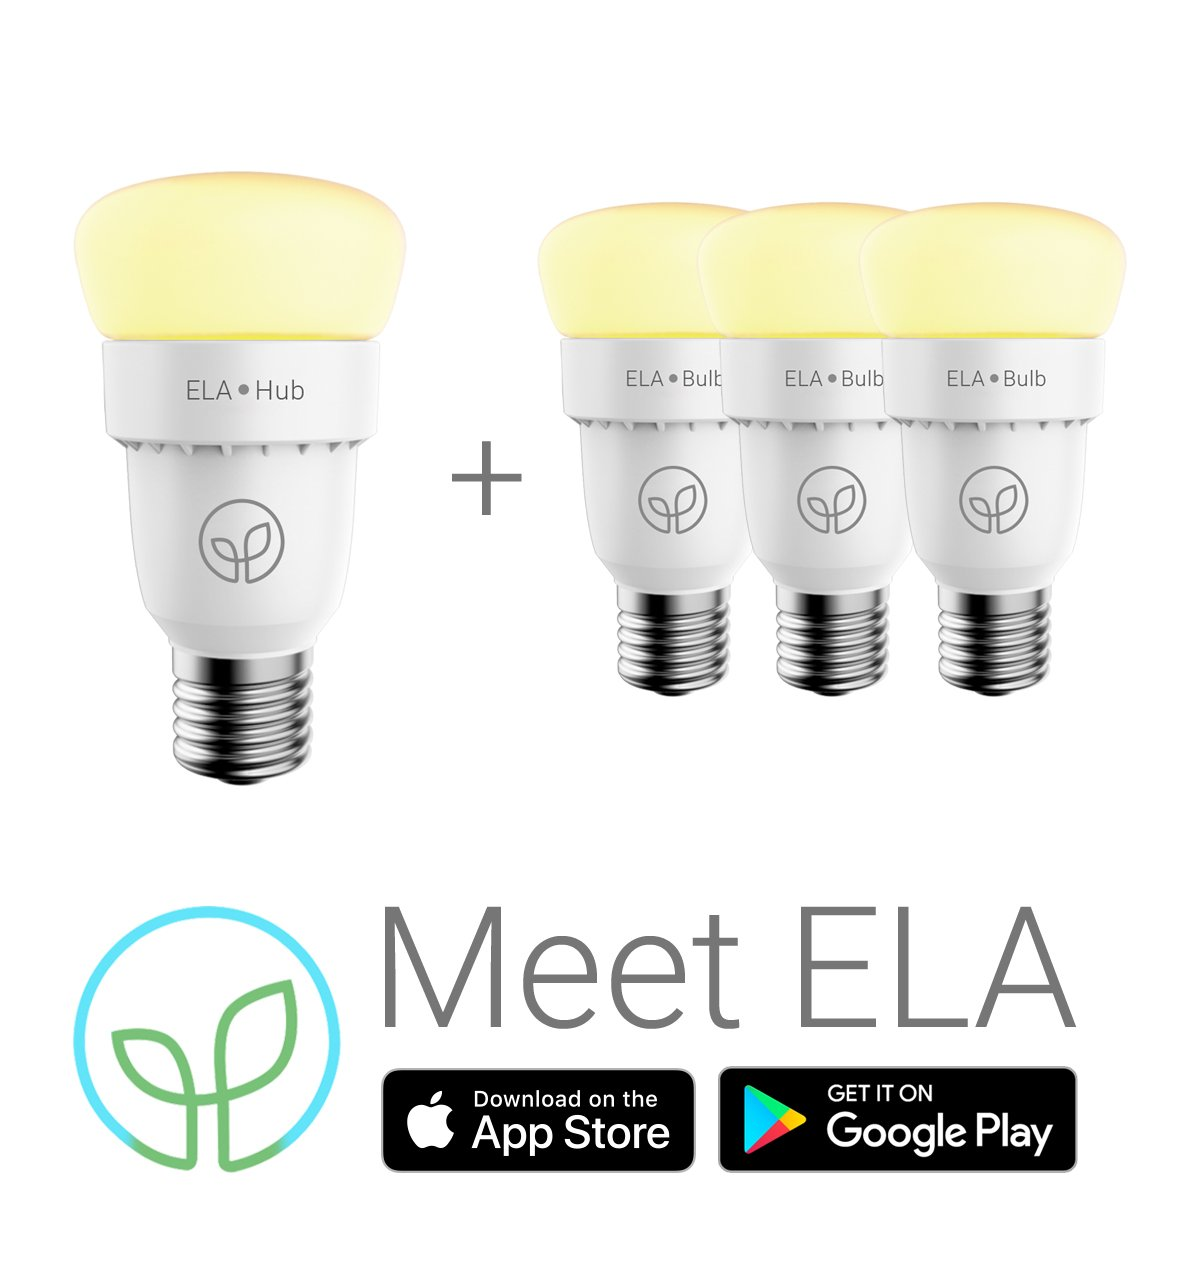 Ela Smart Hub 3 Bulbs Starter Kit Fluorescent Lamp Lights